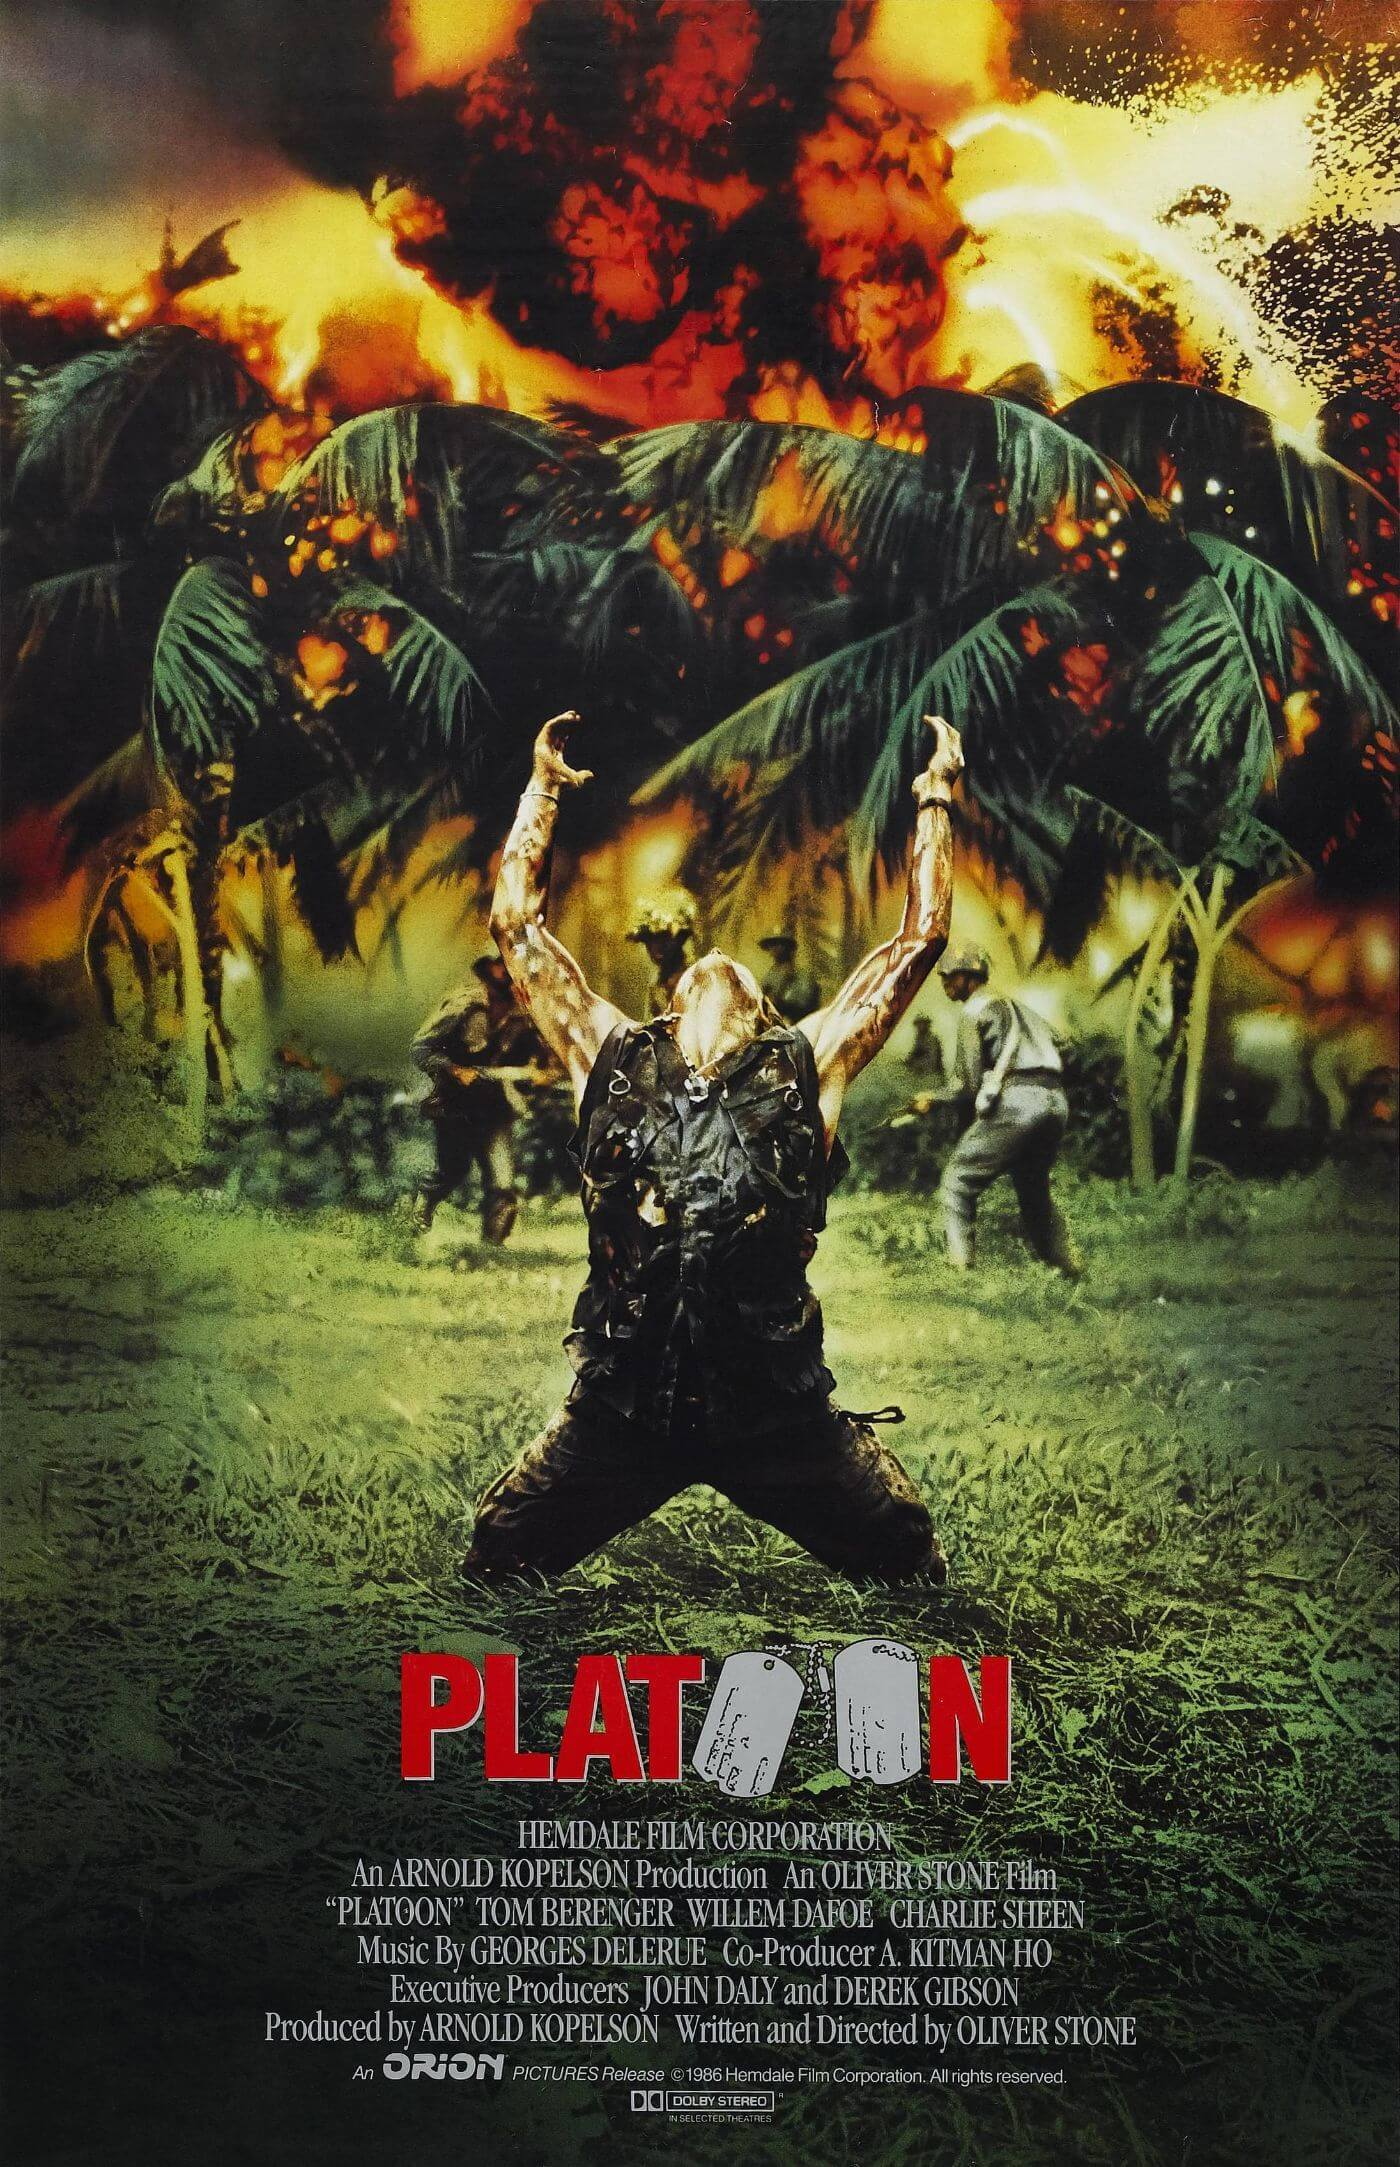 Platoon - Oliver Stone Directed Hollywood Vietnam War Classic - Movie Poster - Life Size Posters